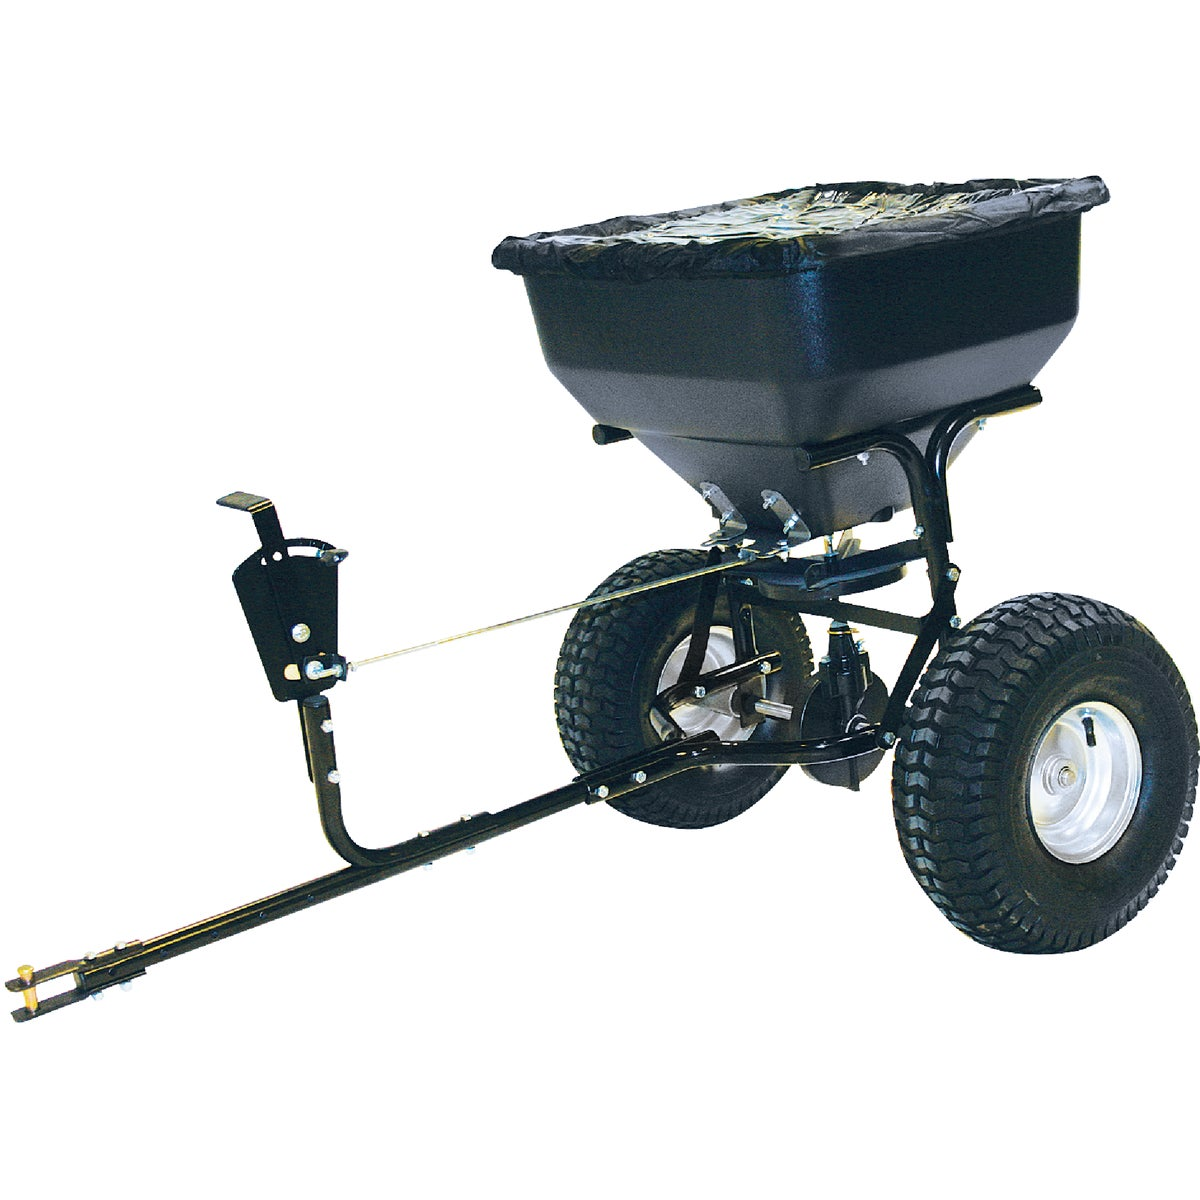 130LB TOW SPREADER - TBS6500 by Precision Prod Inc